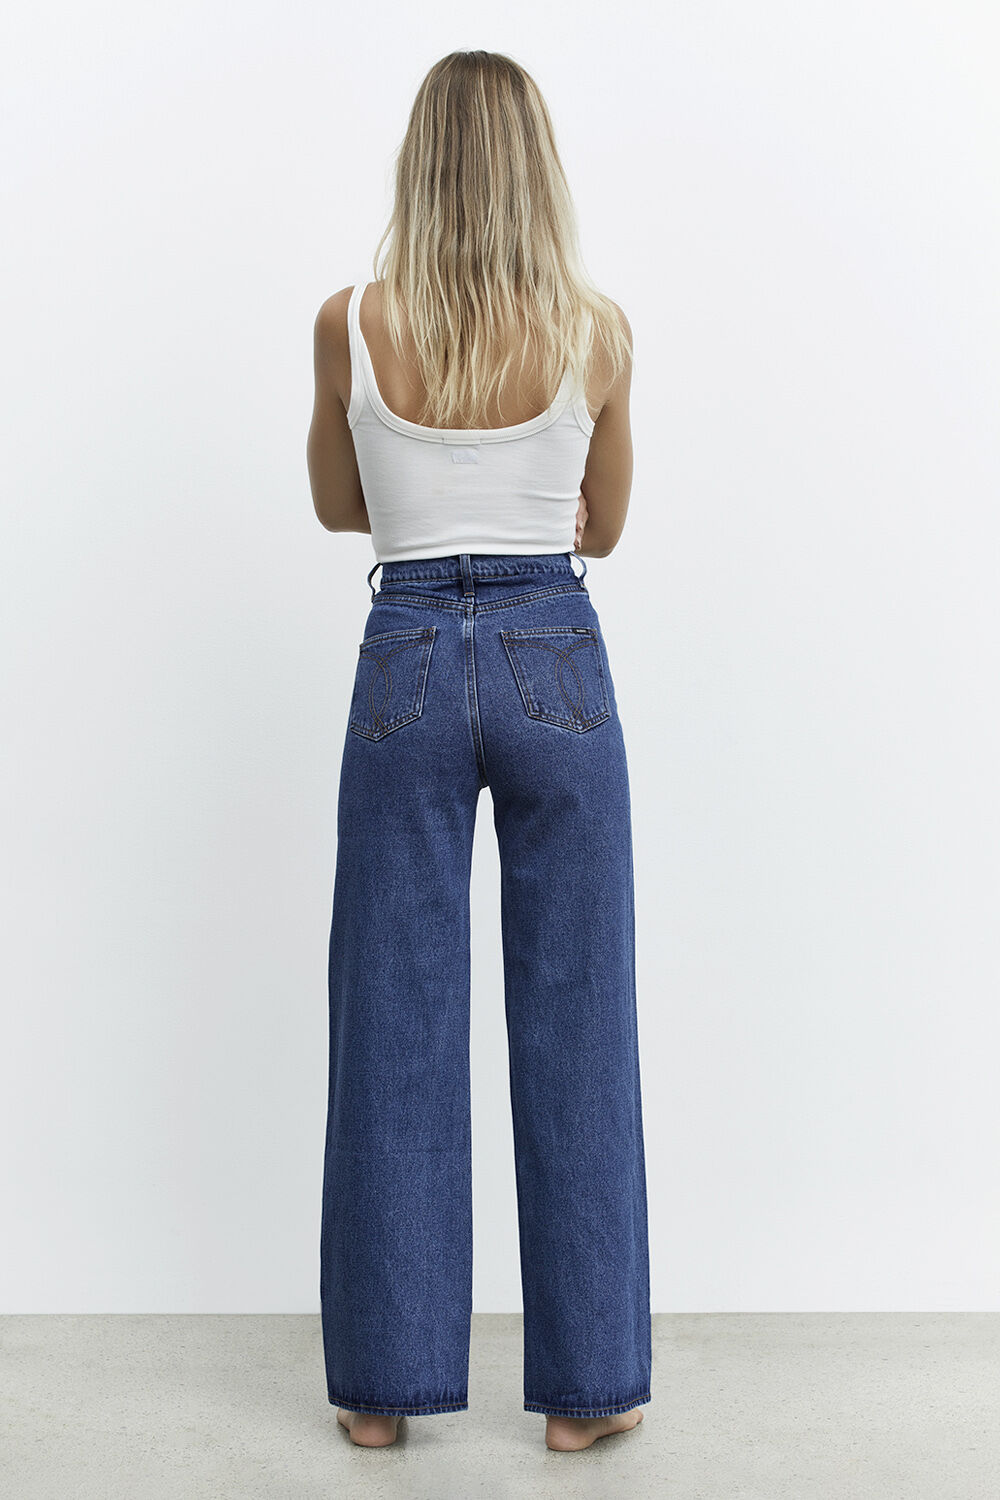 CINDY WIDE FULL LEG JEAN in colour TRUE NAVY